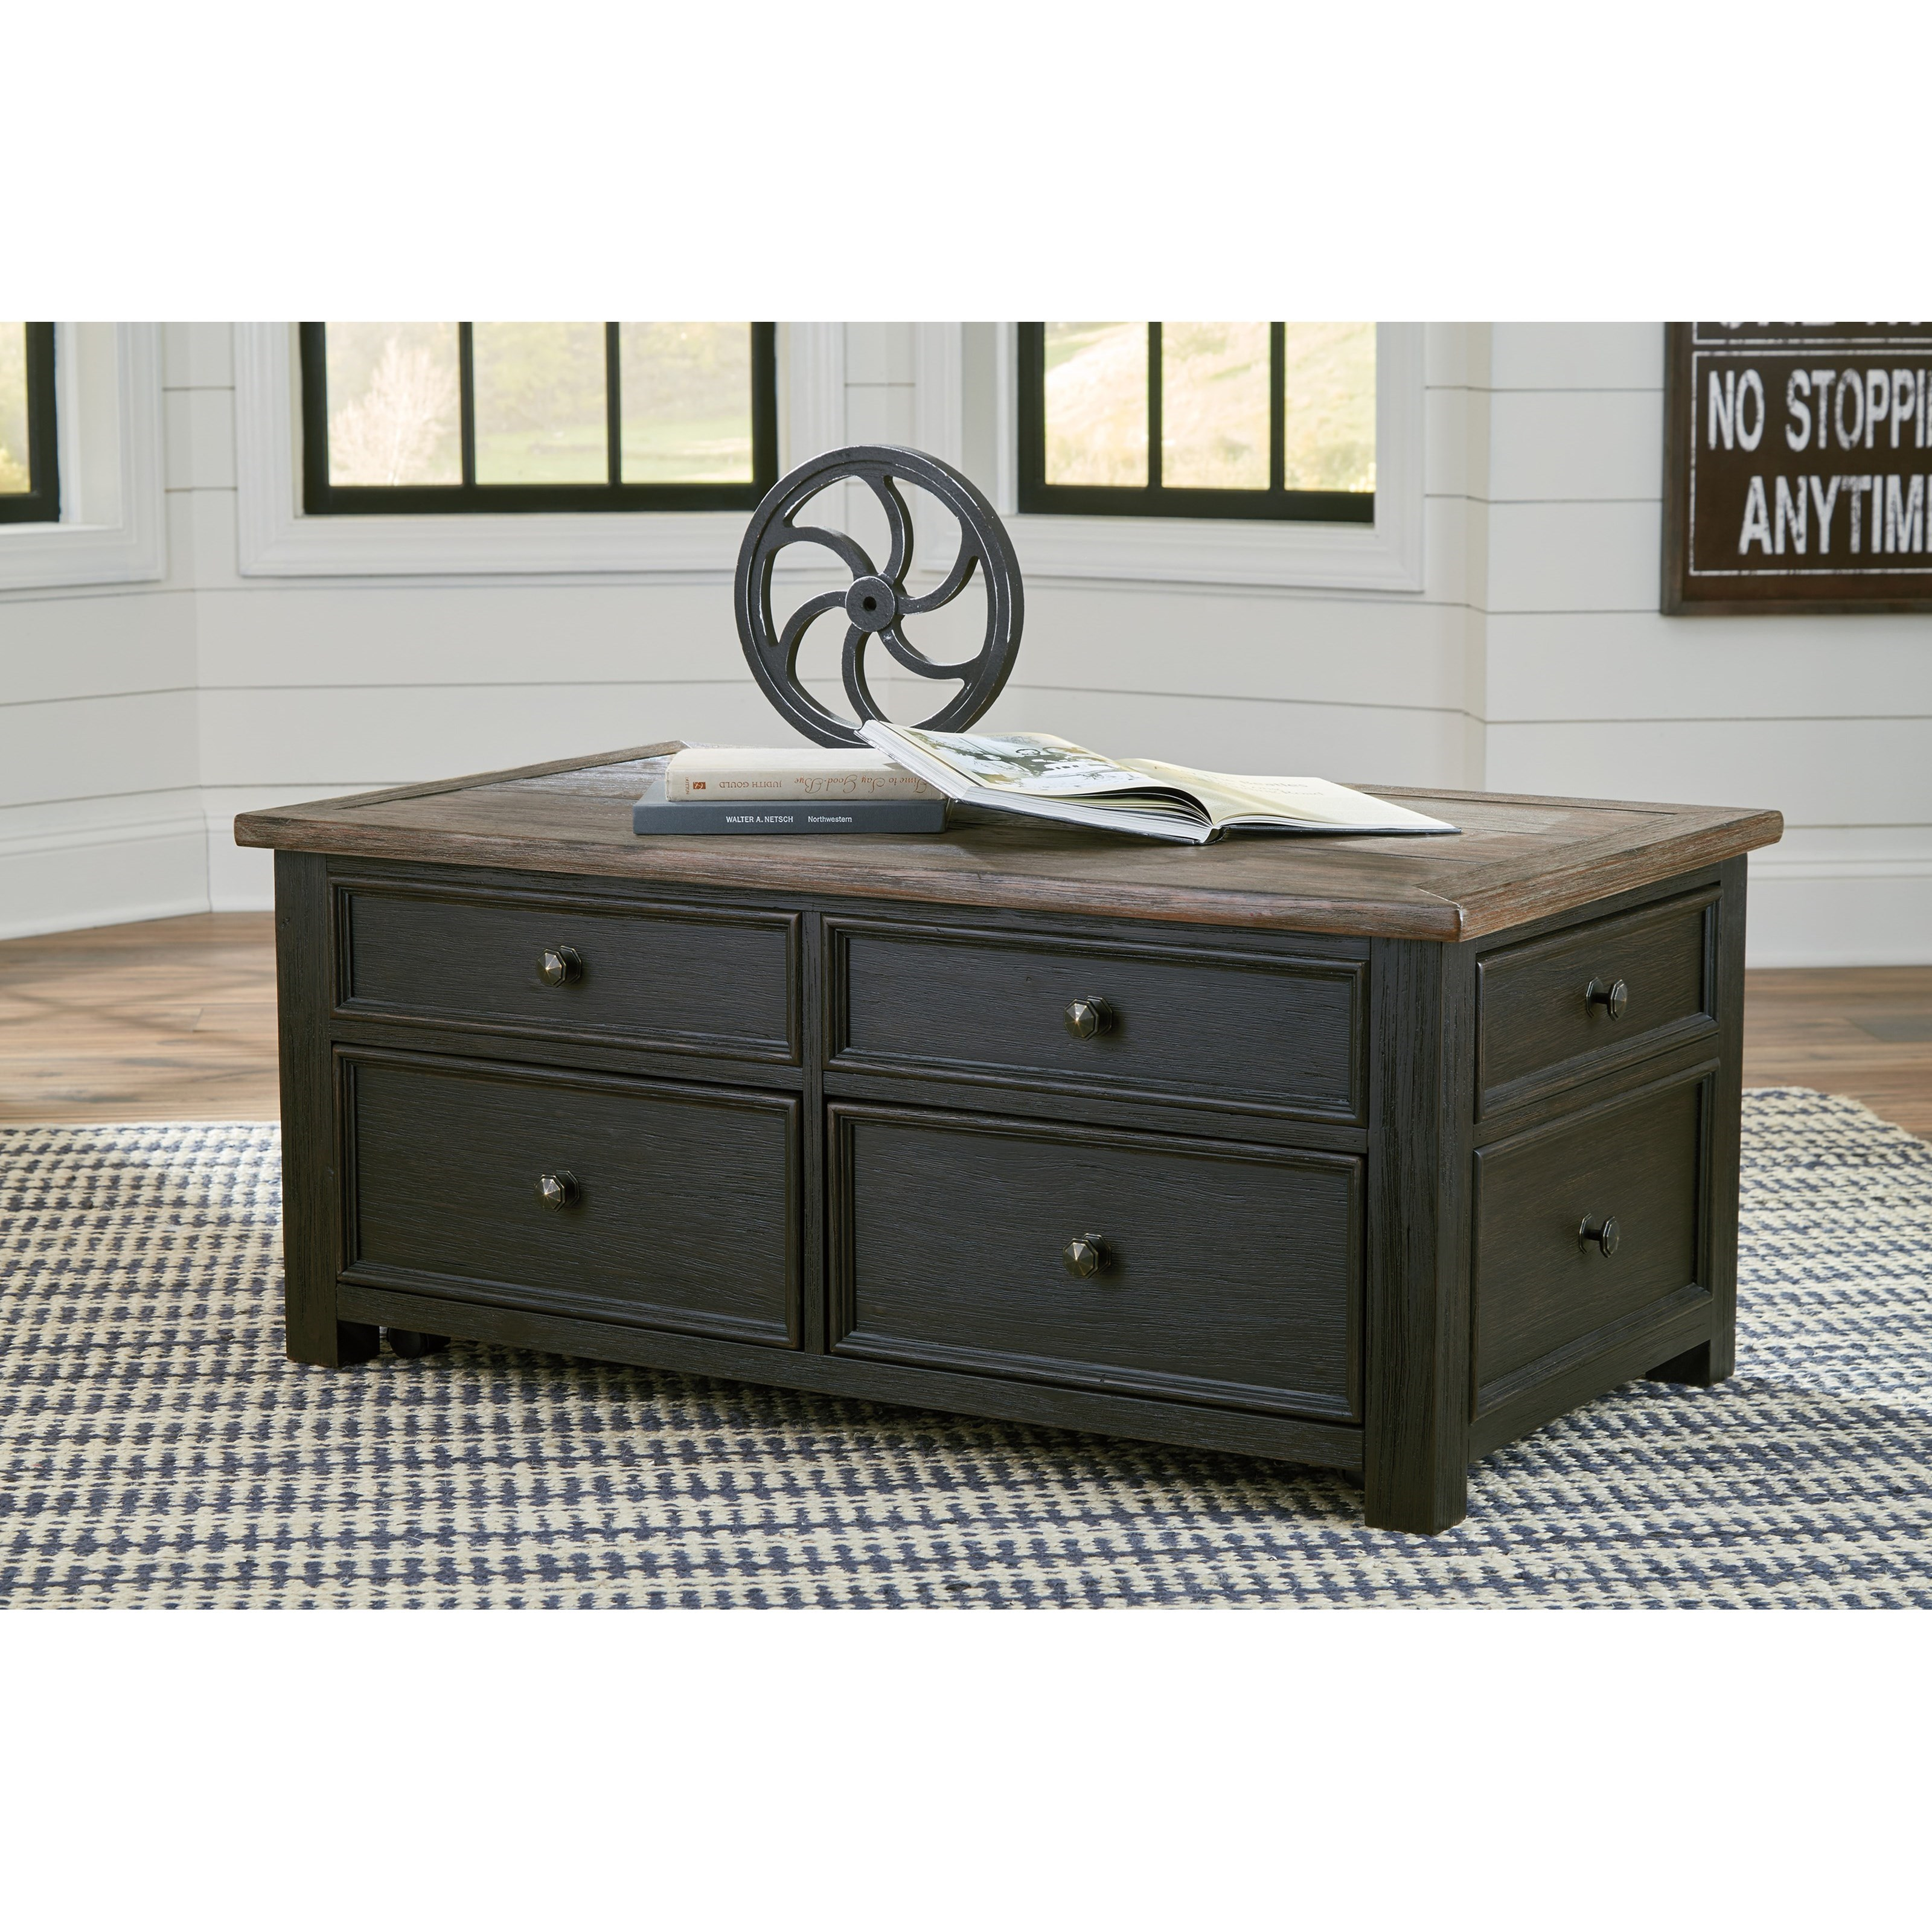 Lift Top Coffee Table Antique: Antique Black Lift Top Cocktail Table With 4